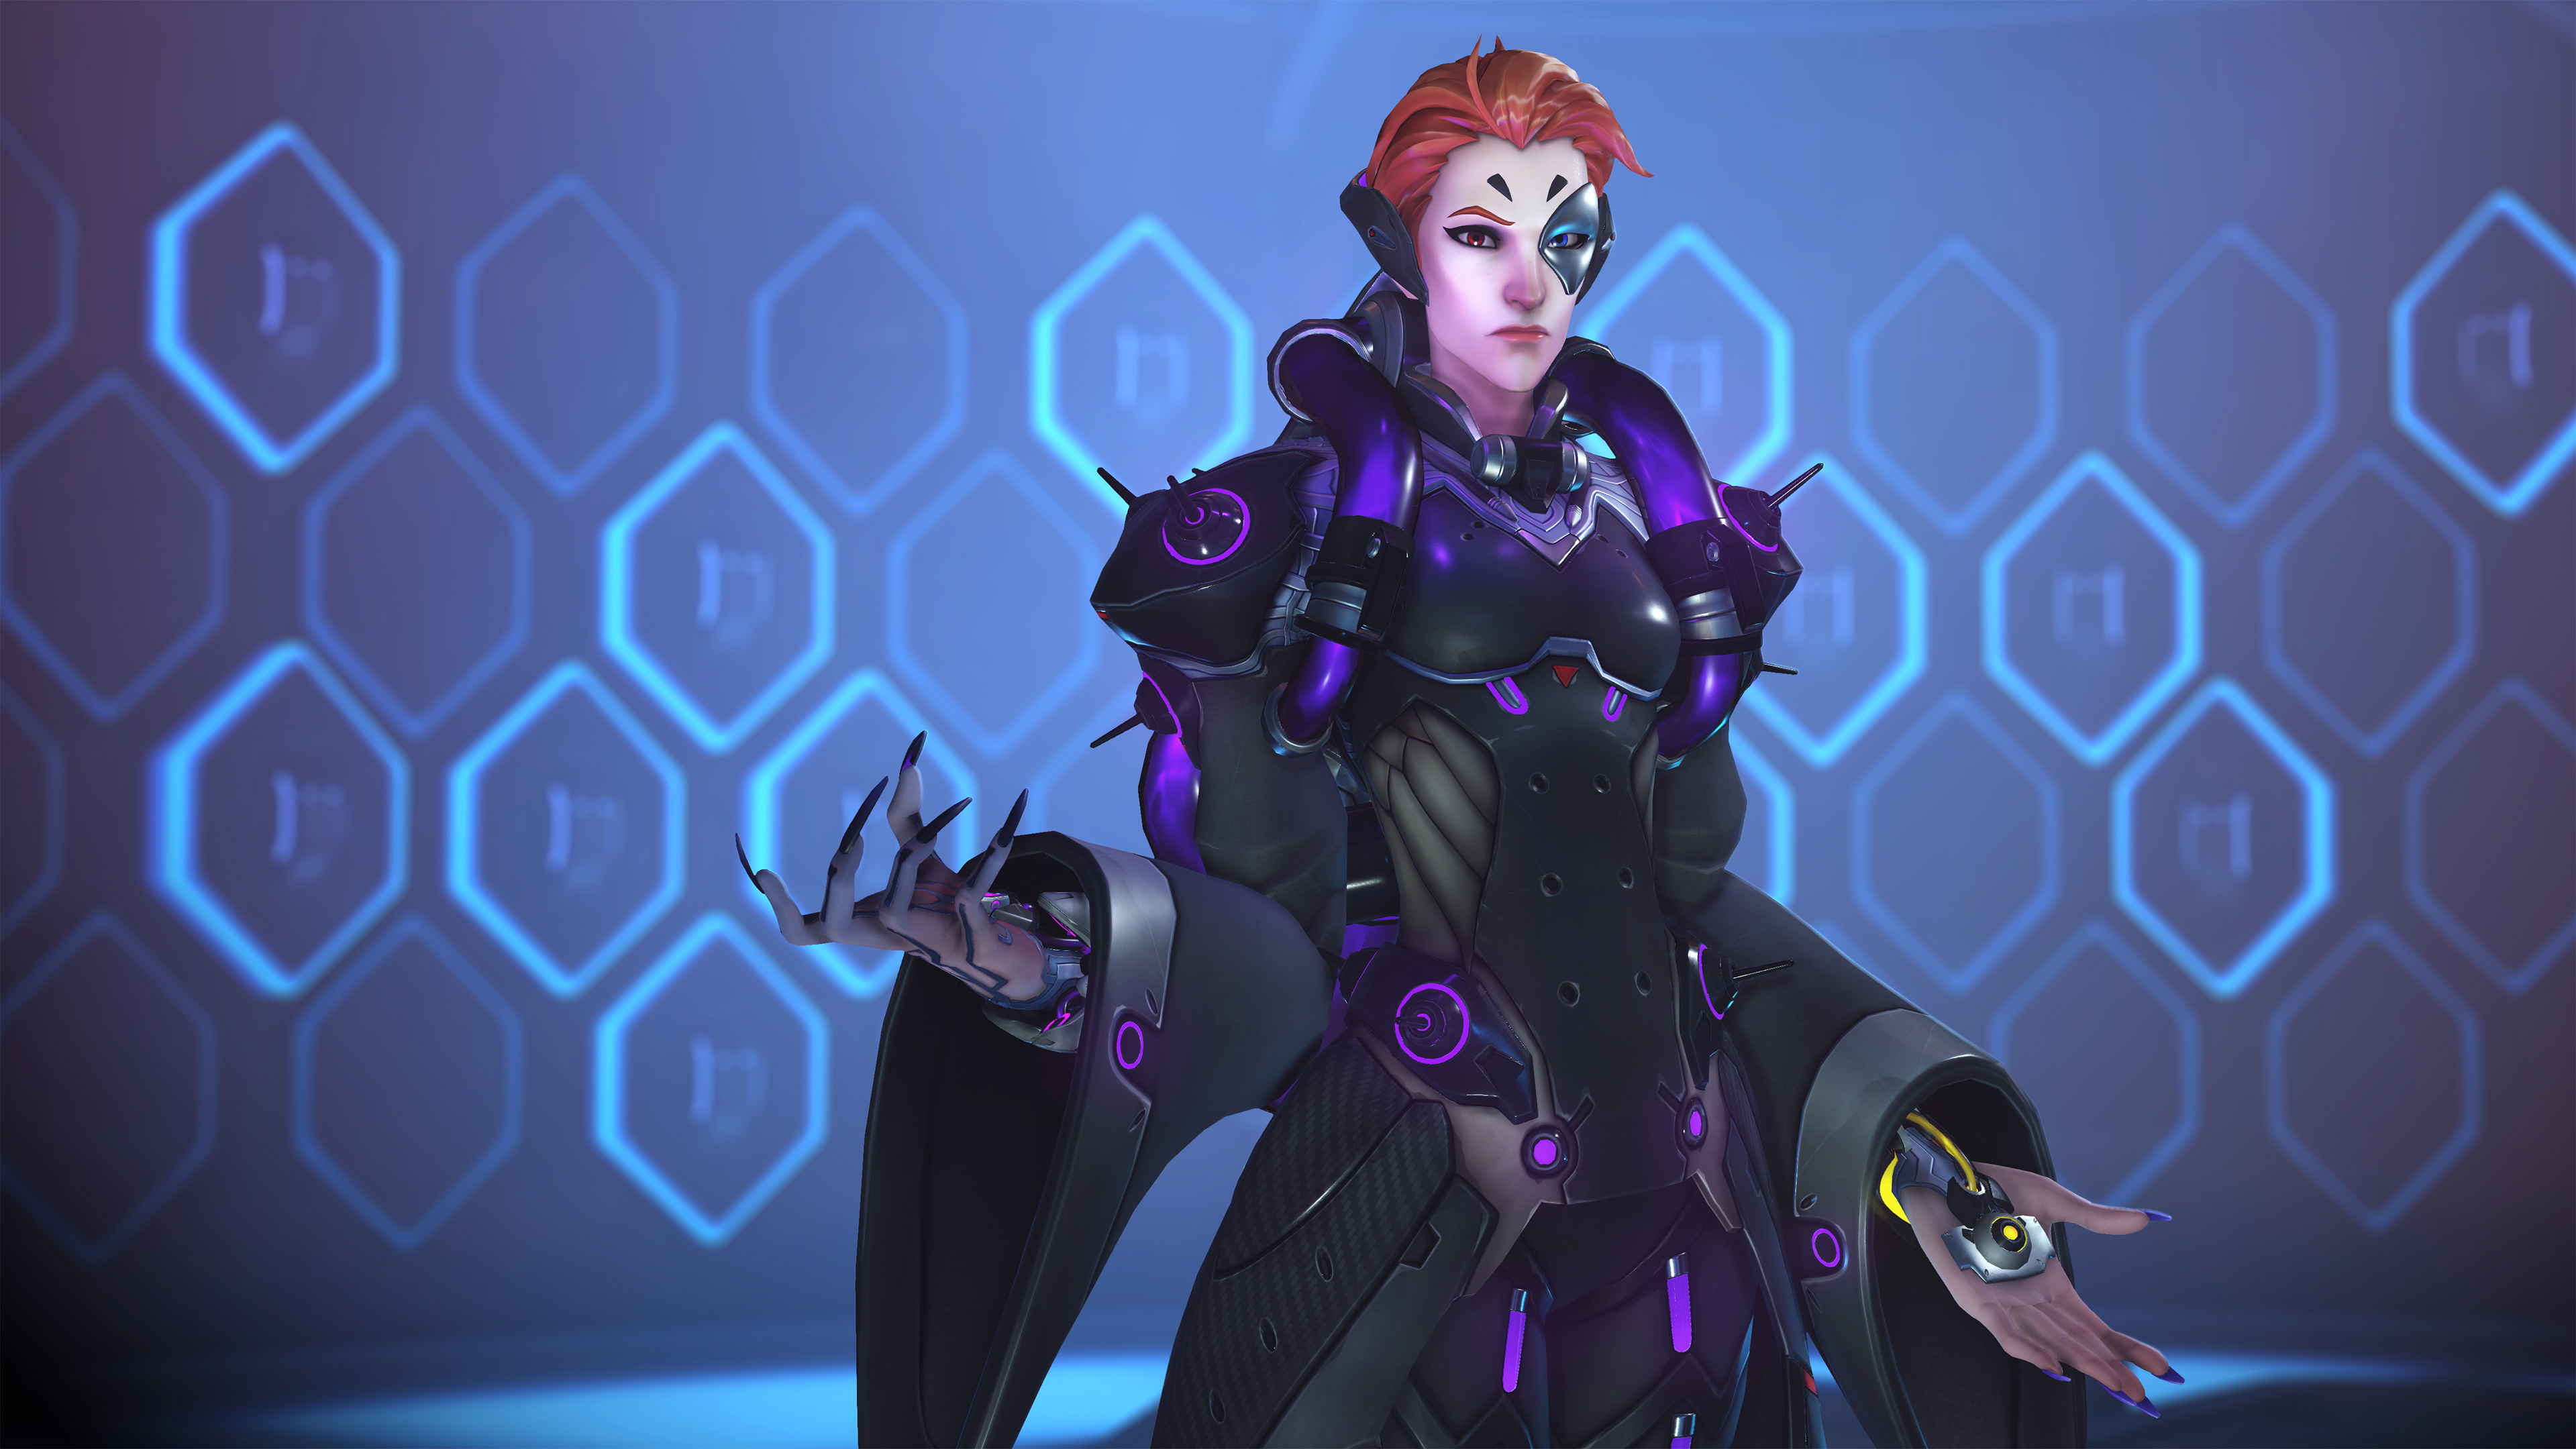 Hd Wallpapers 1080p Moira